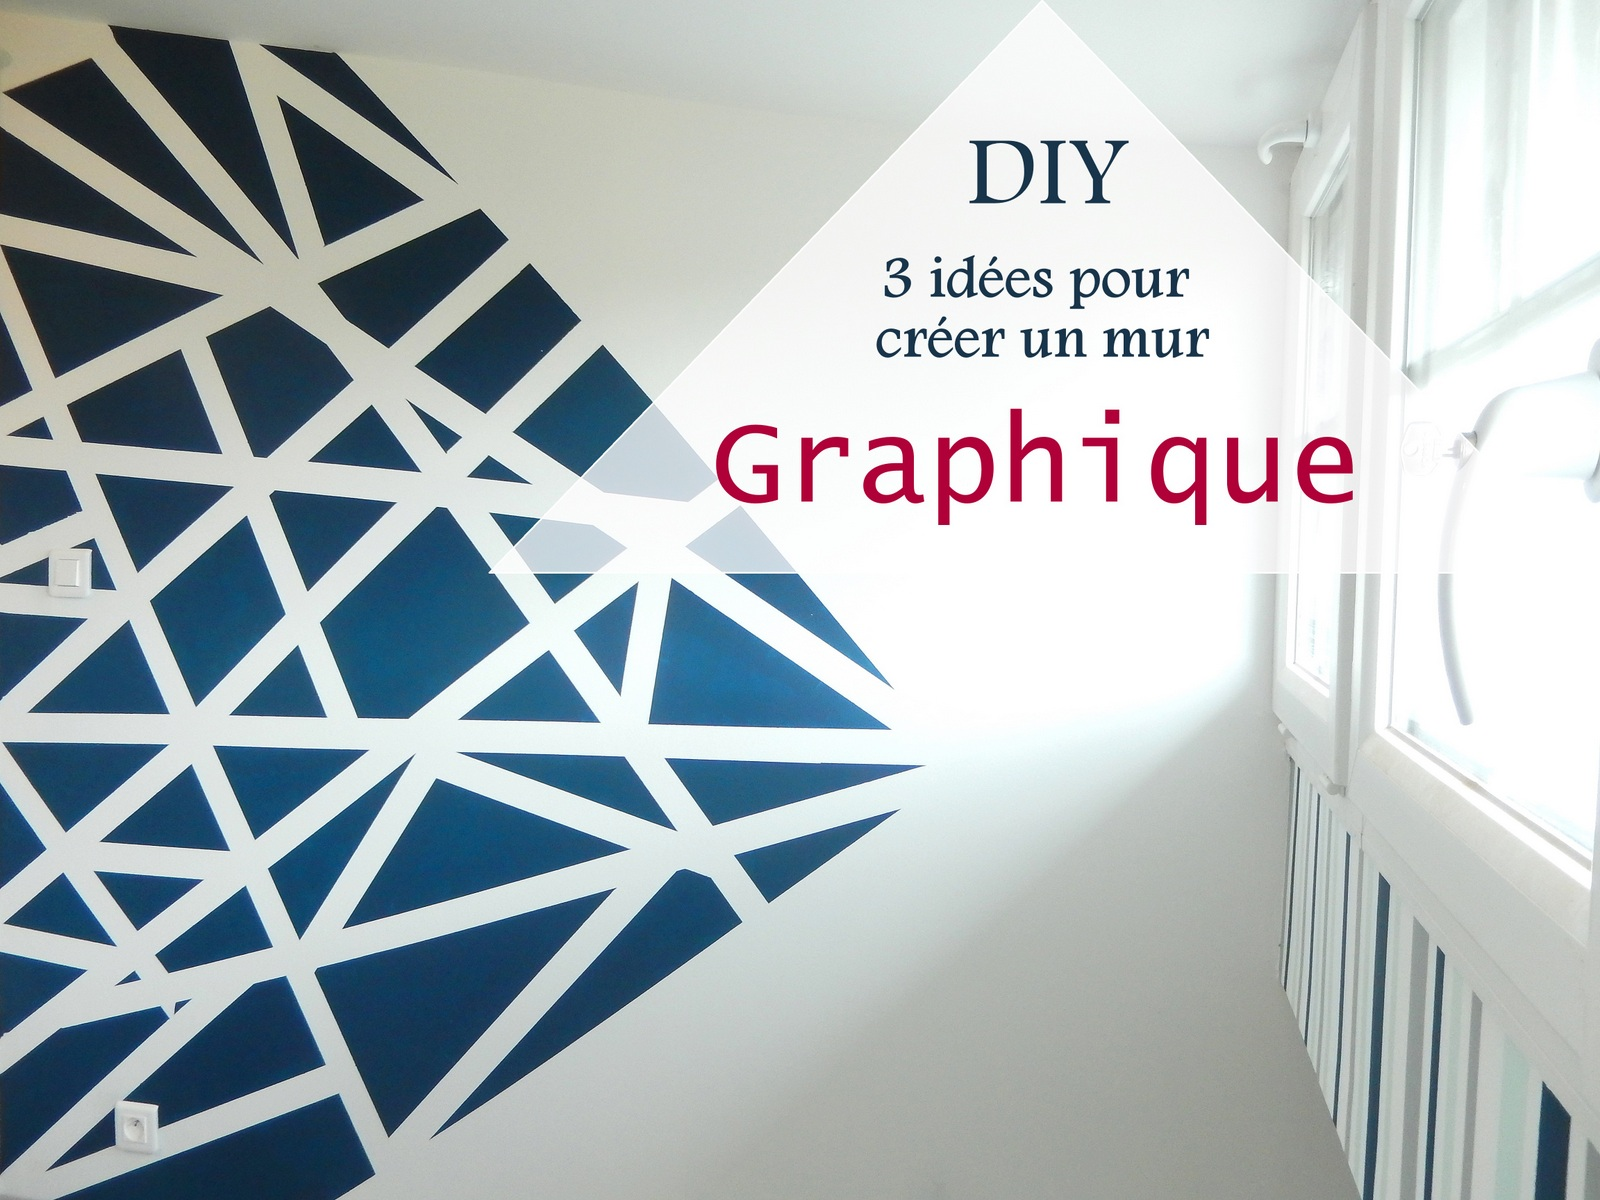 diy 3 id es pour cr er un mur graphique mon carnet d co diy organisation du quotidien. Black Bedroom Furniture Sets. Home Design Ideas